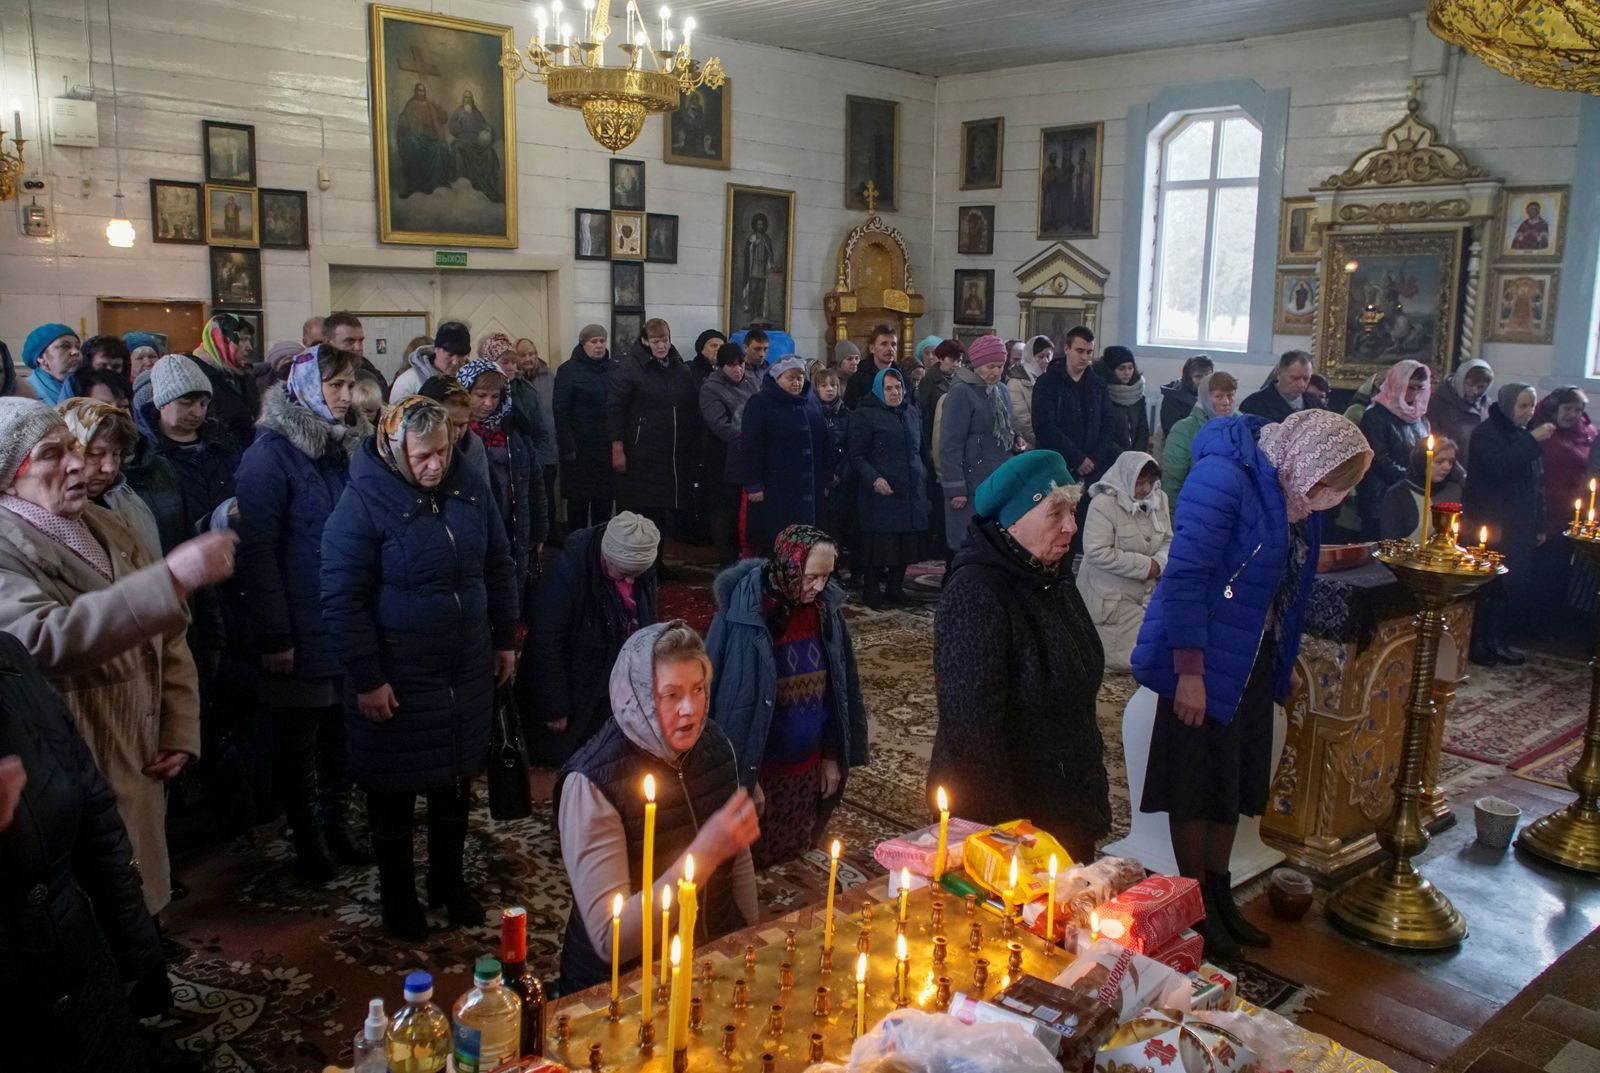 People attend a service in an Orthodox Church in Dyatlovo